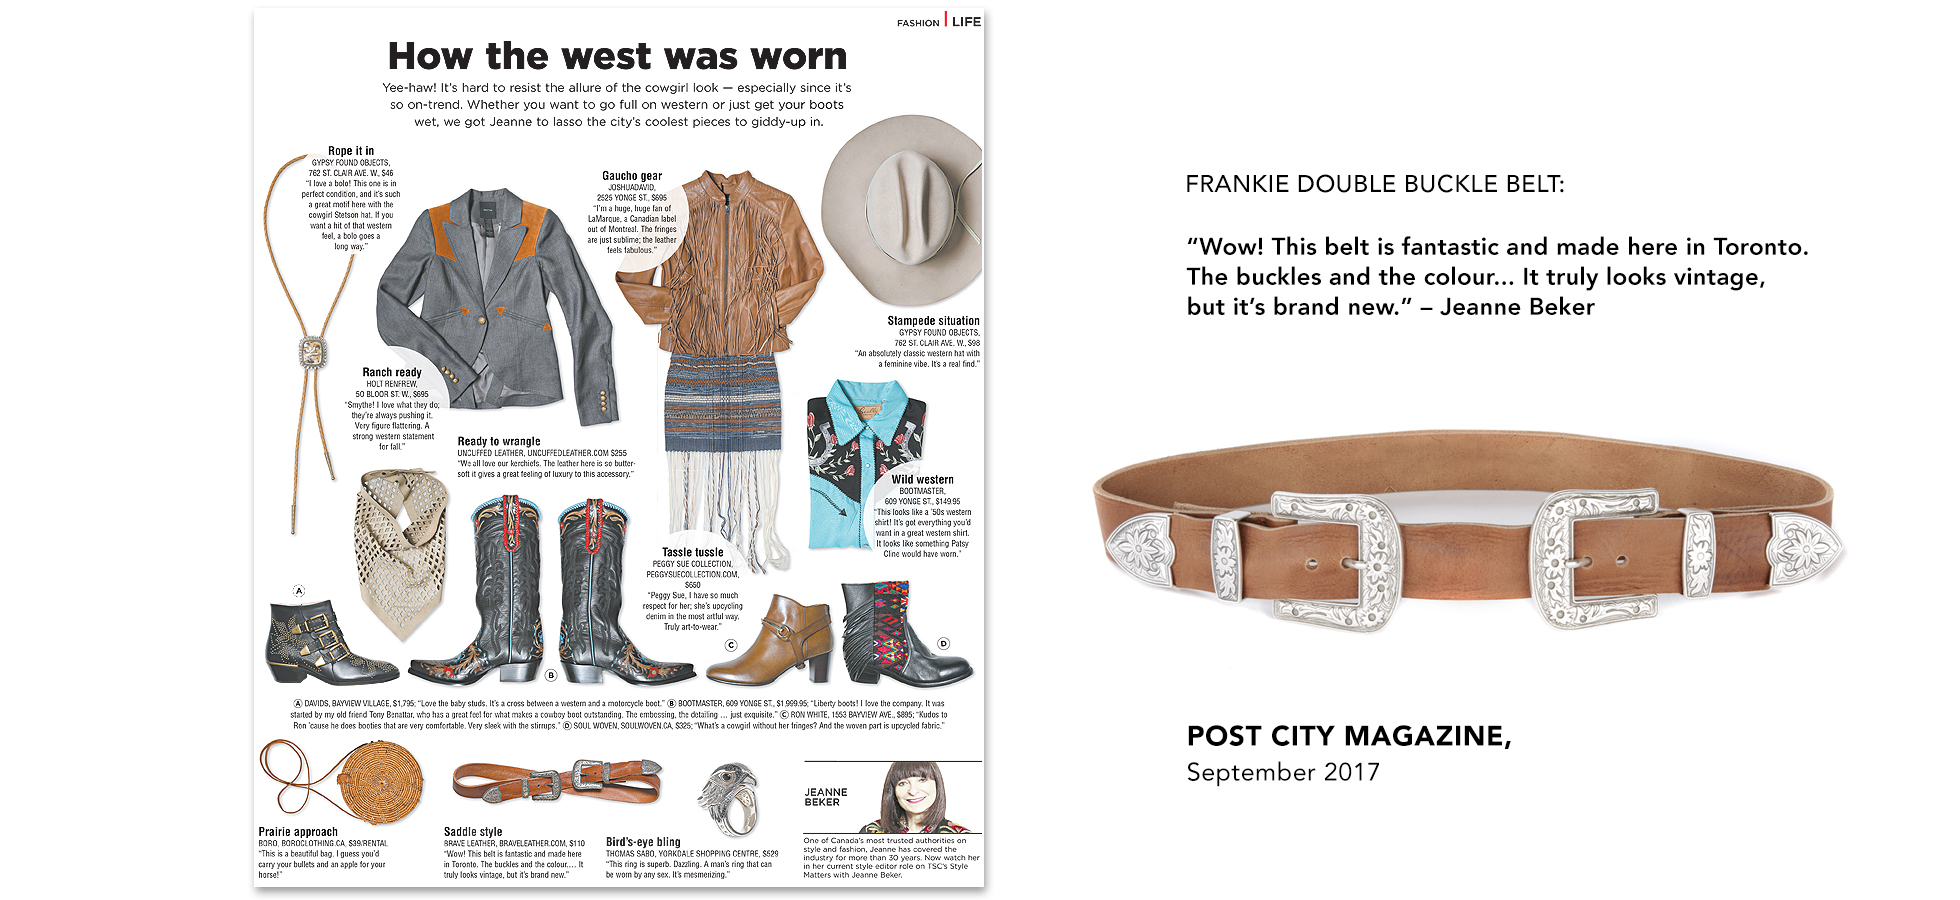 POST CITY MAGAZINE